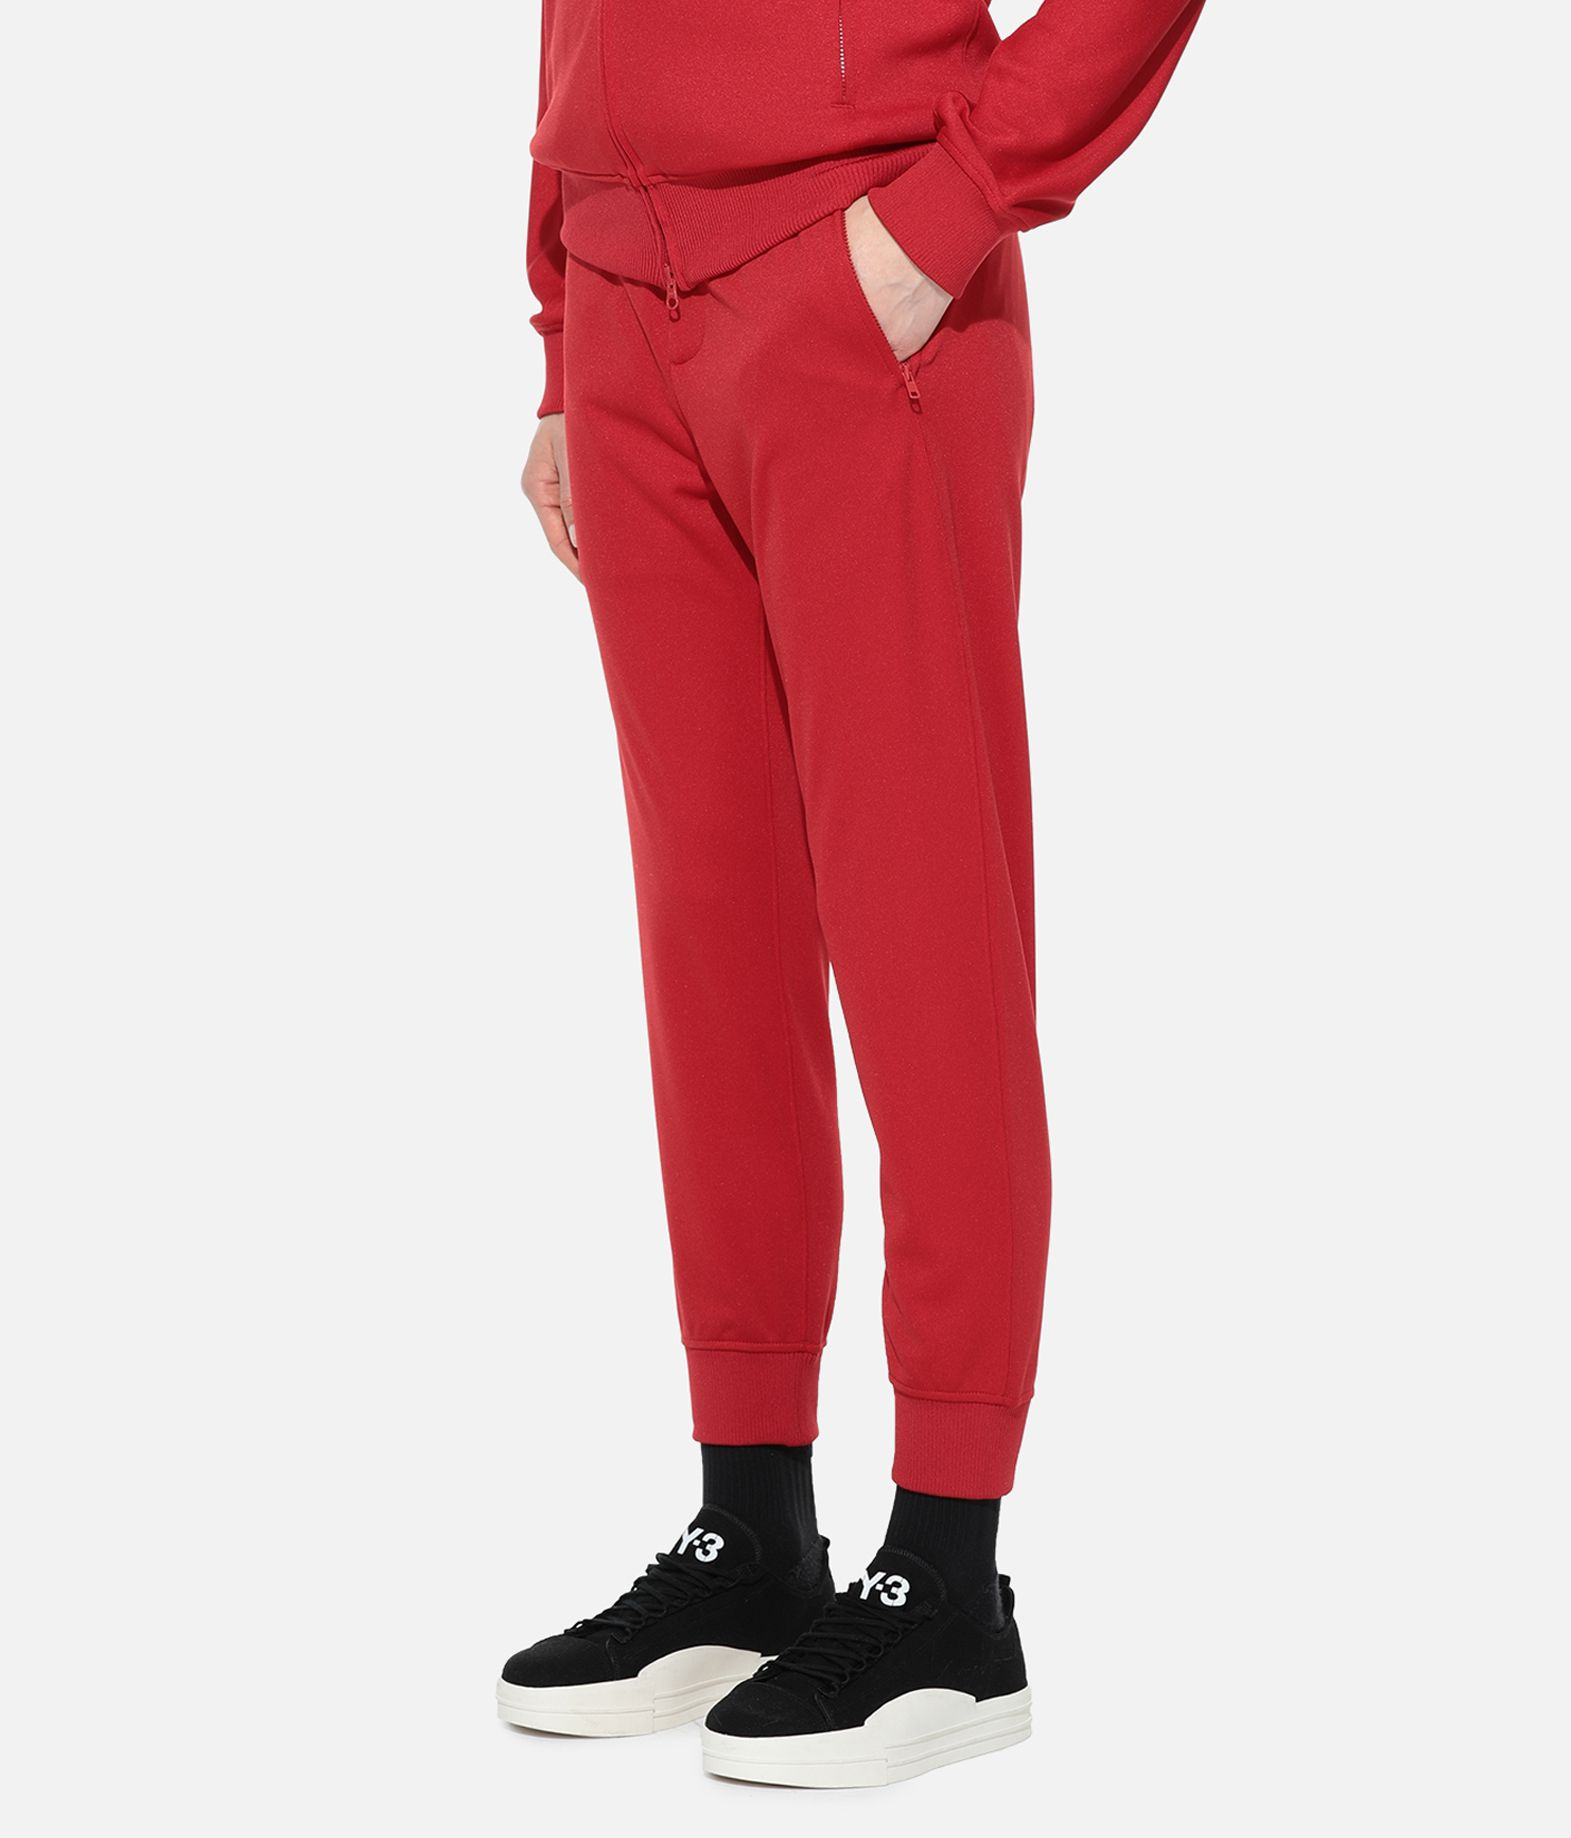 Y-3 Y-3 Classic Track Pants Casual pants Woman e